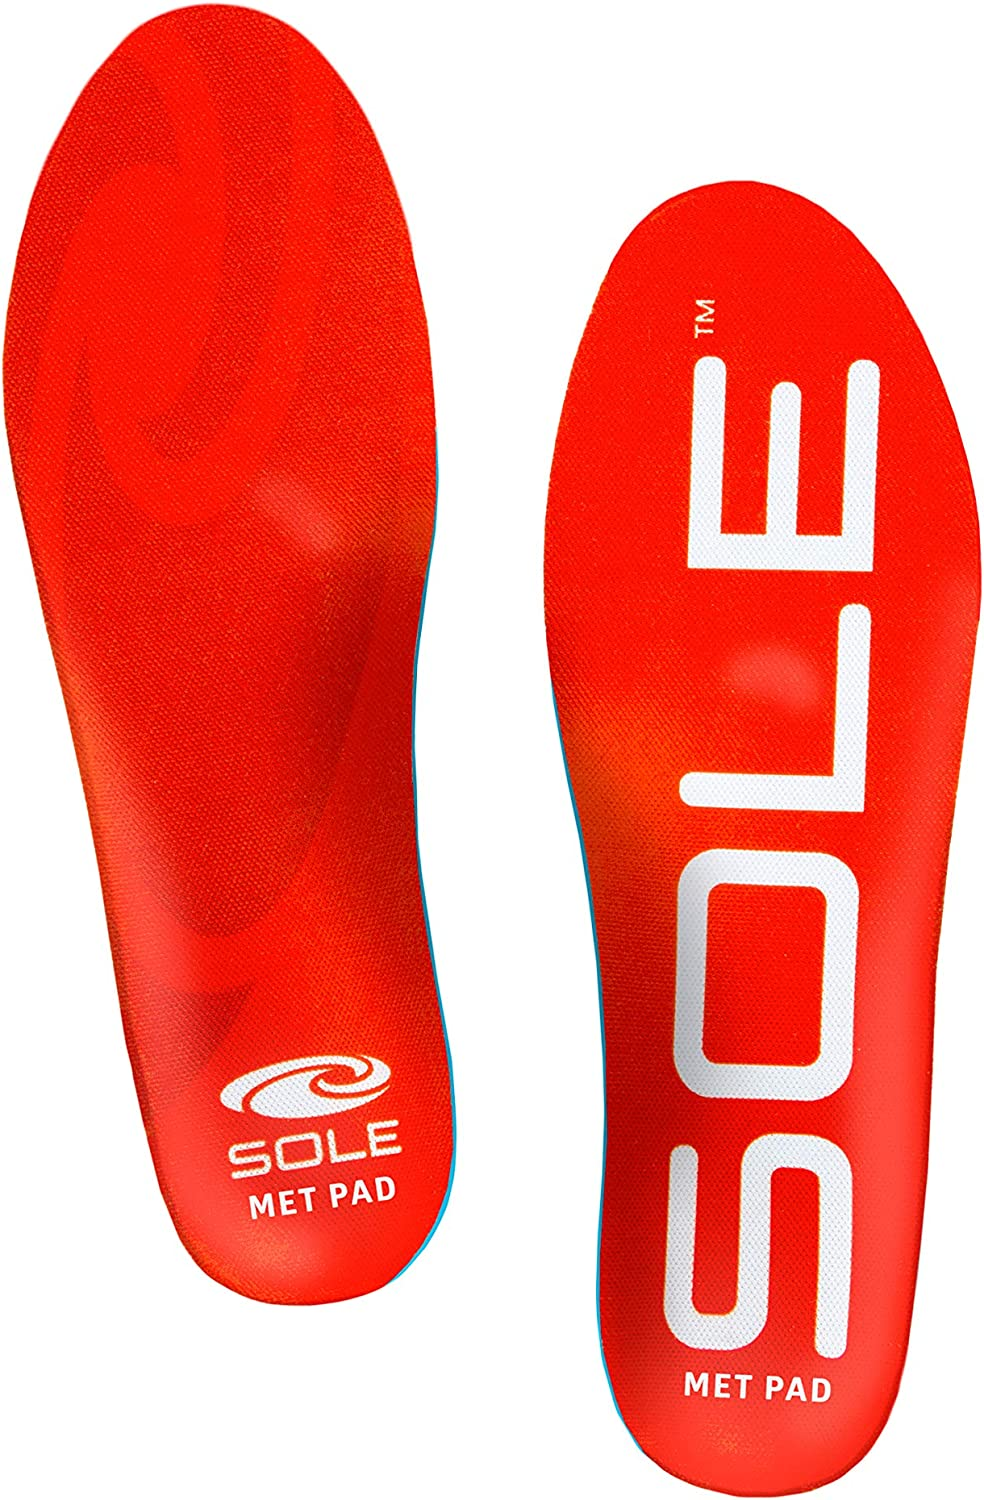 SOLE Active Medium Shoe Insoles with Metatarsal Pads - Multiple Sizes